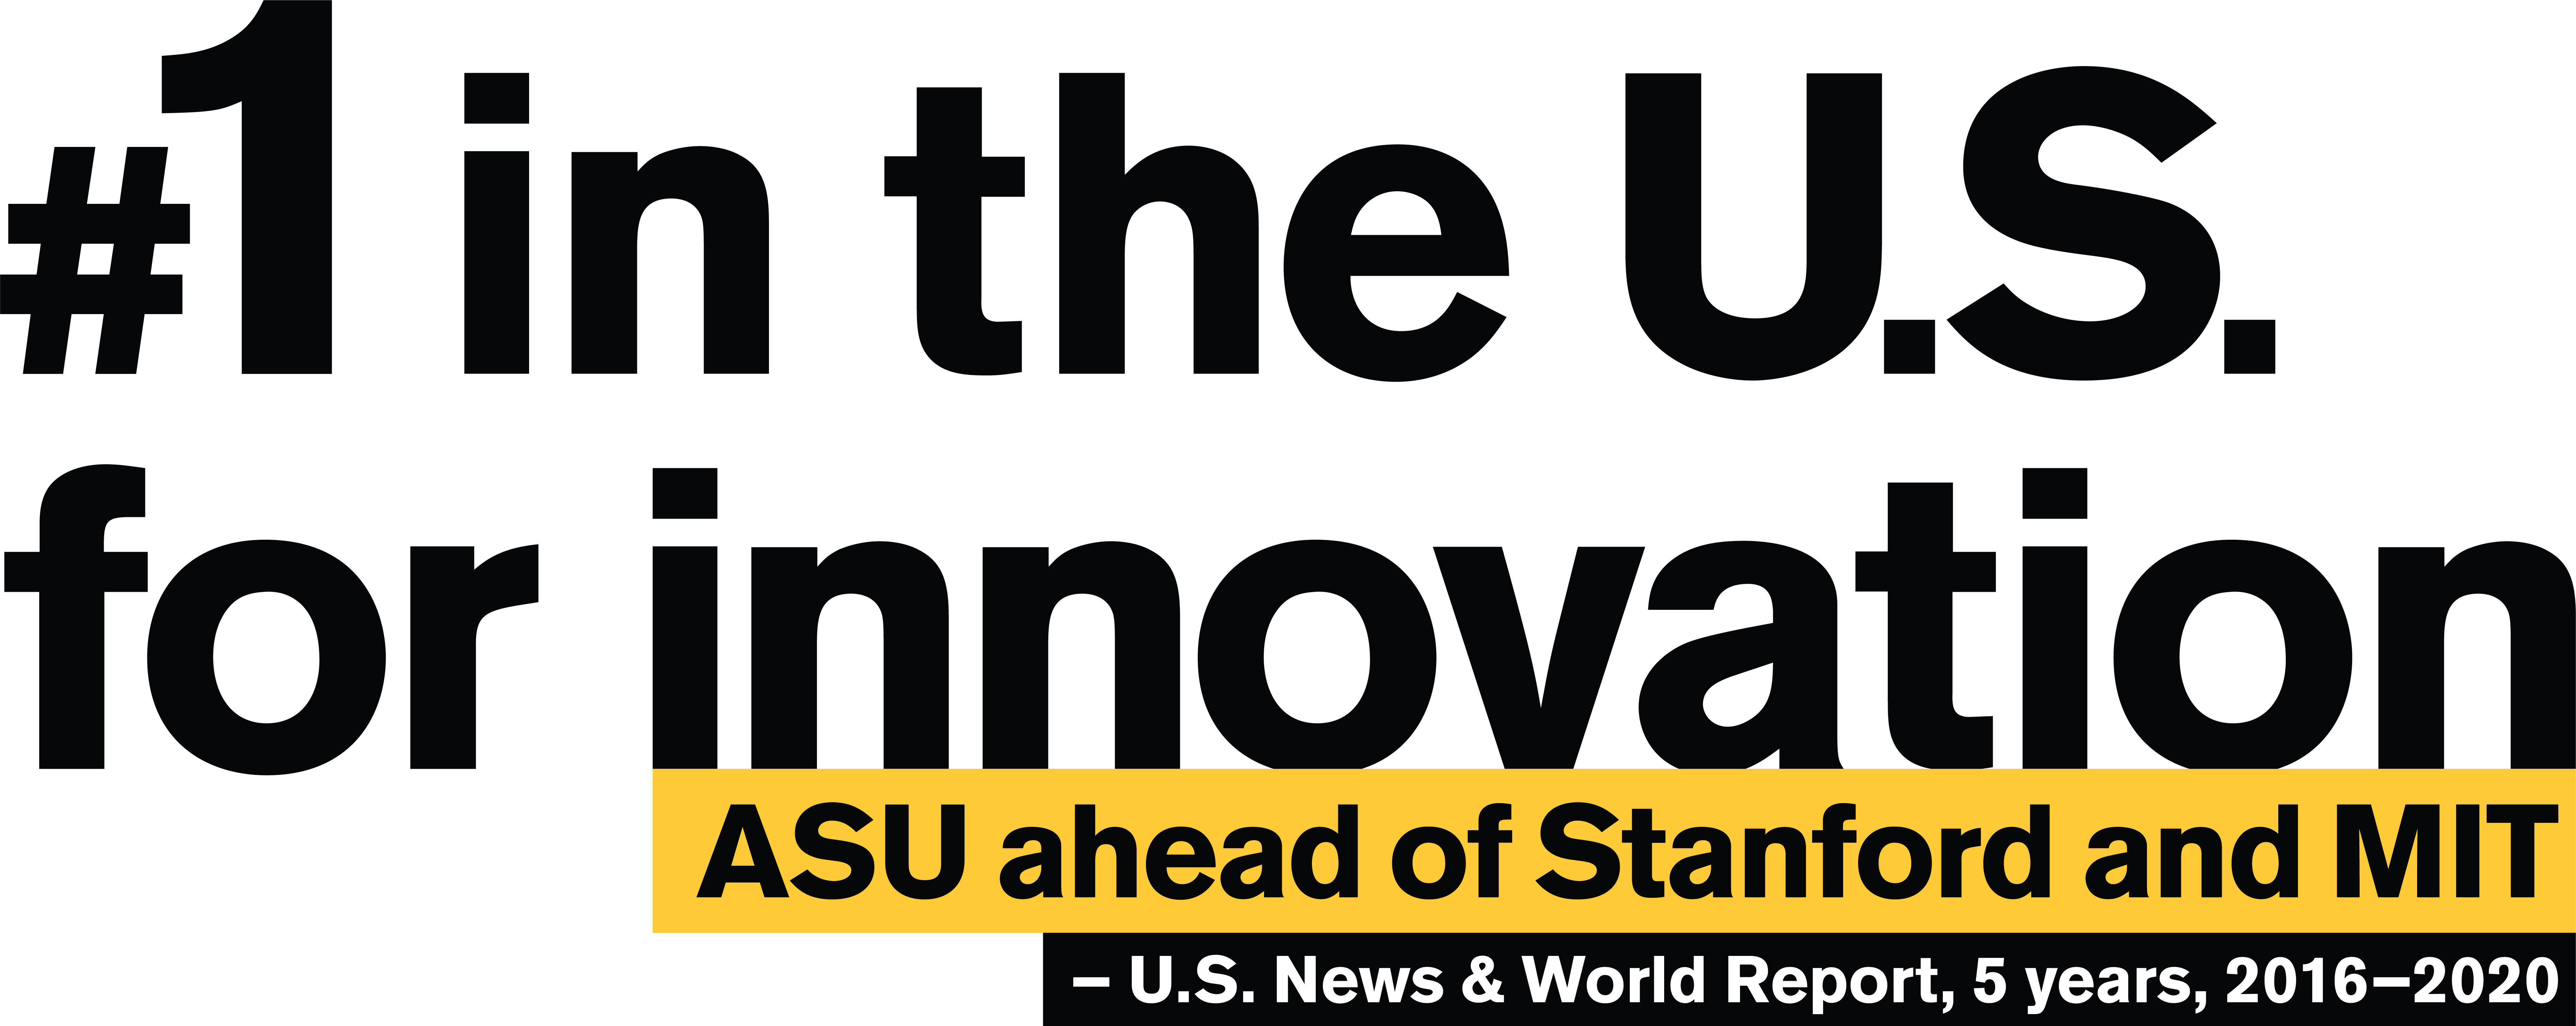 ASU Ranking #1 in the U.S. for innovation